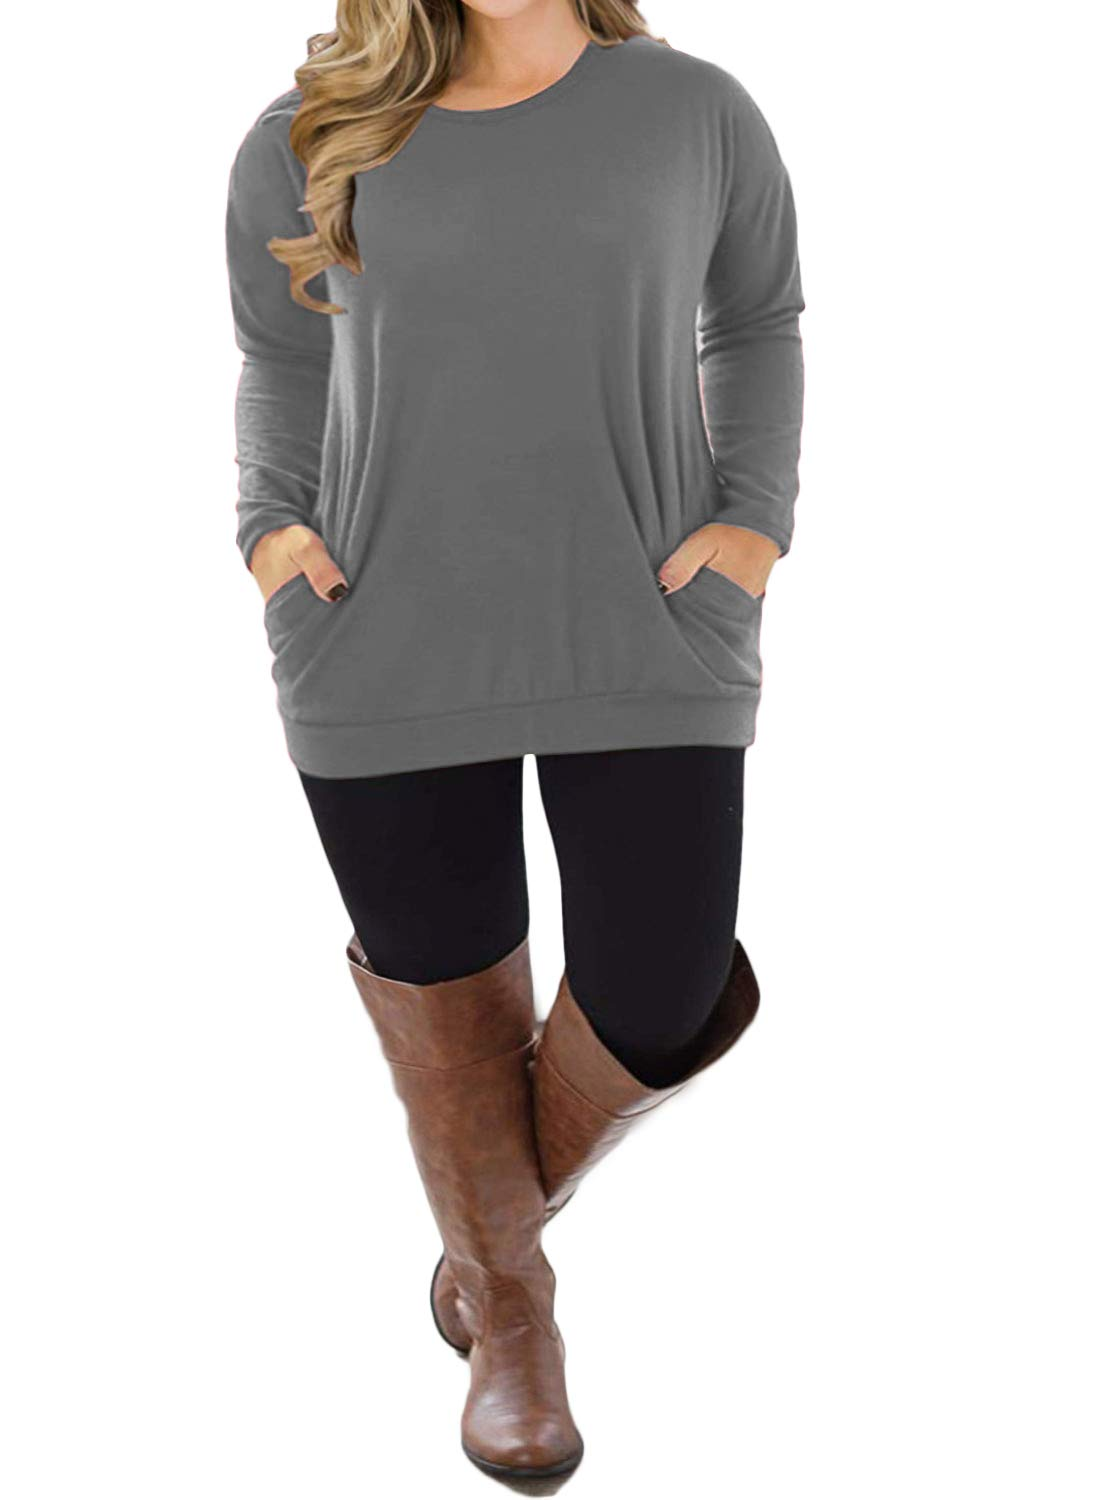 VISLILY Womens Plus Size Tops Long Sleeve Tee Shirts Loose Casual Blouse with Pockets